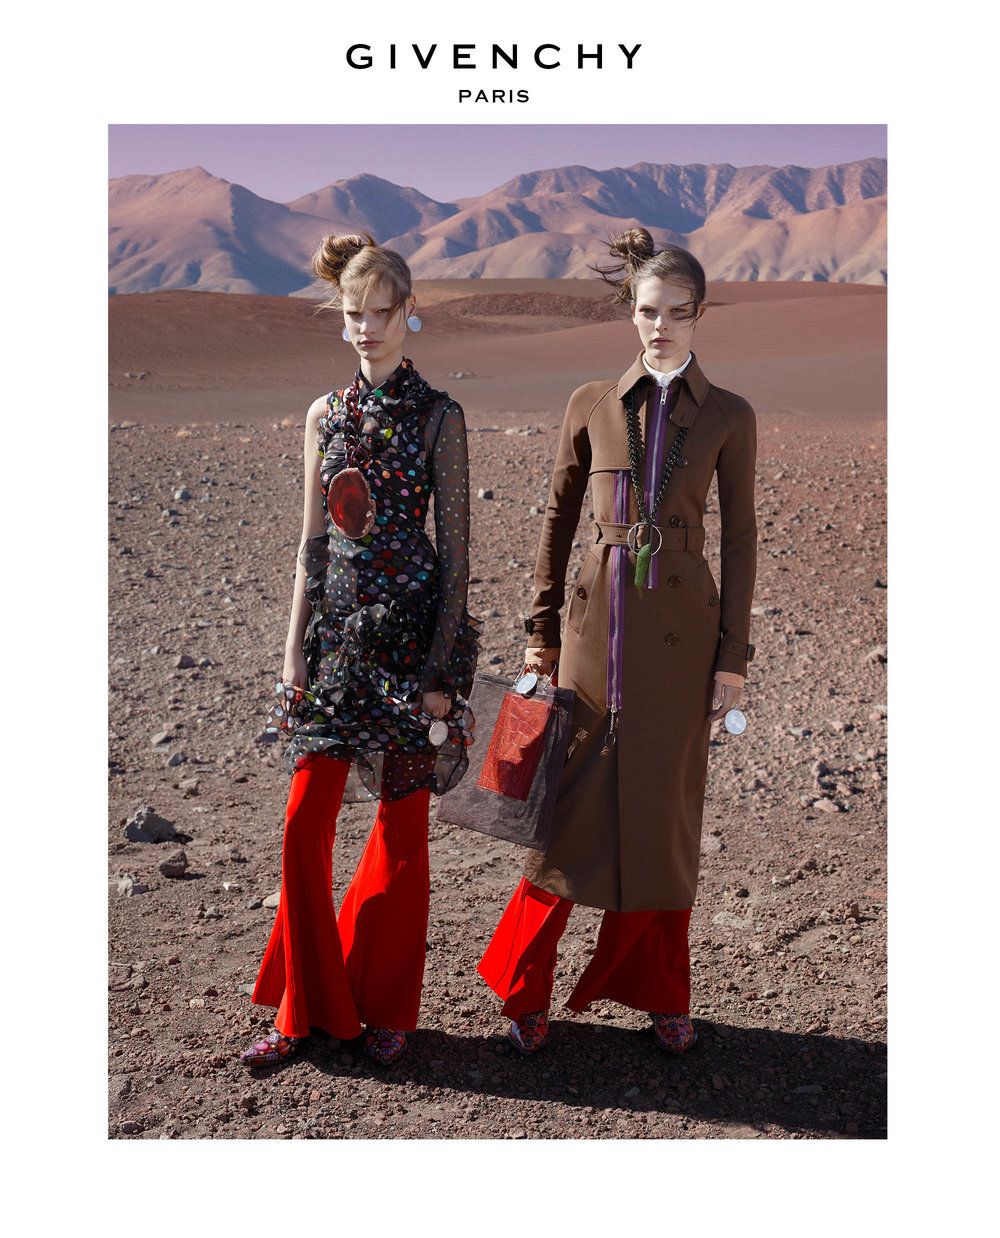 GIVENCHY, 2016  by Mert and Marcus  Dreamer Postproductions